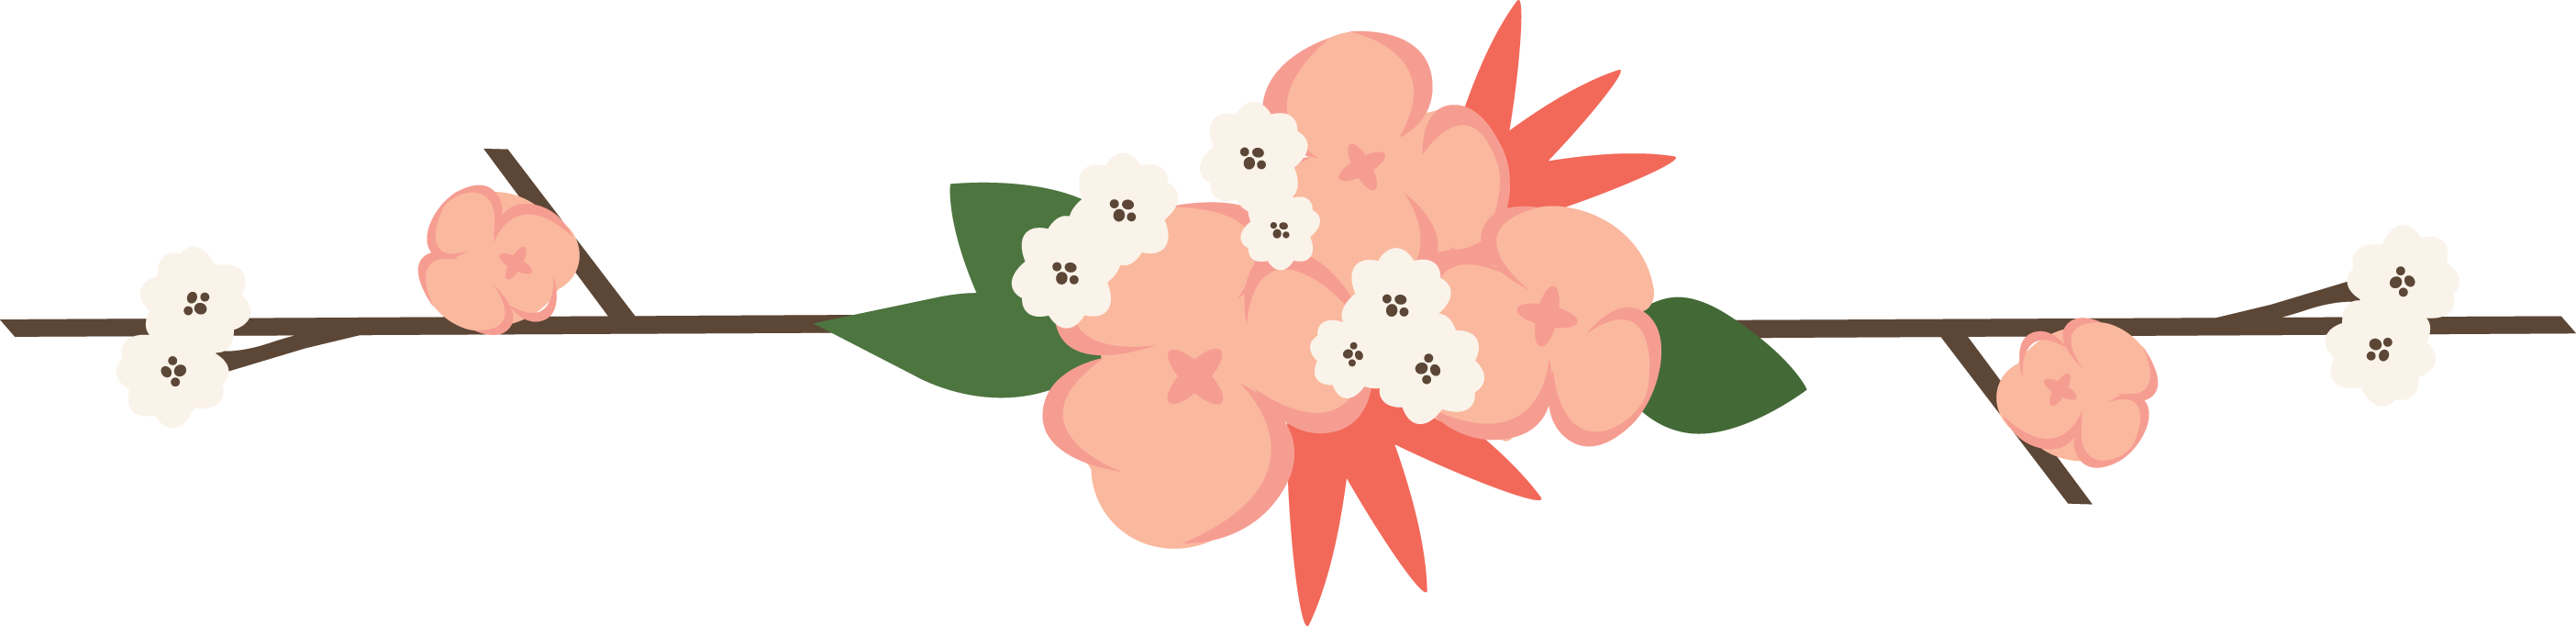 Flower divider png. Images of floral dividers